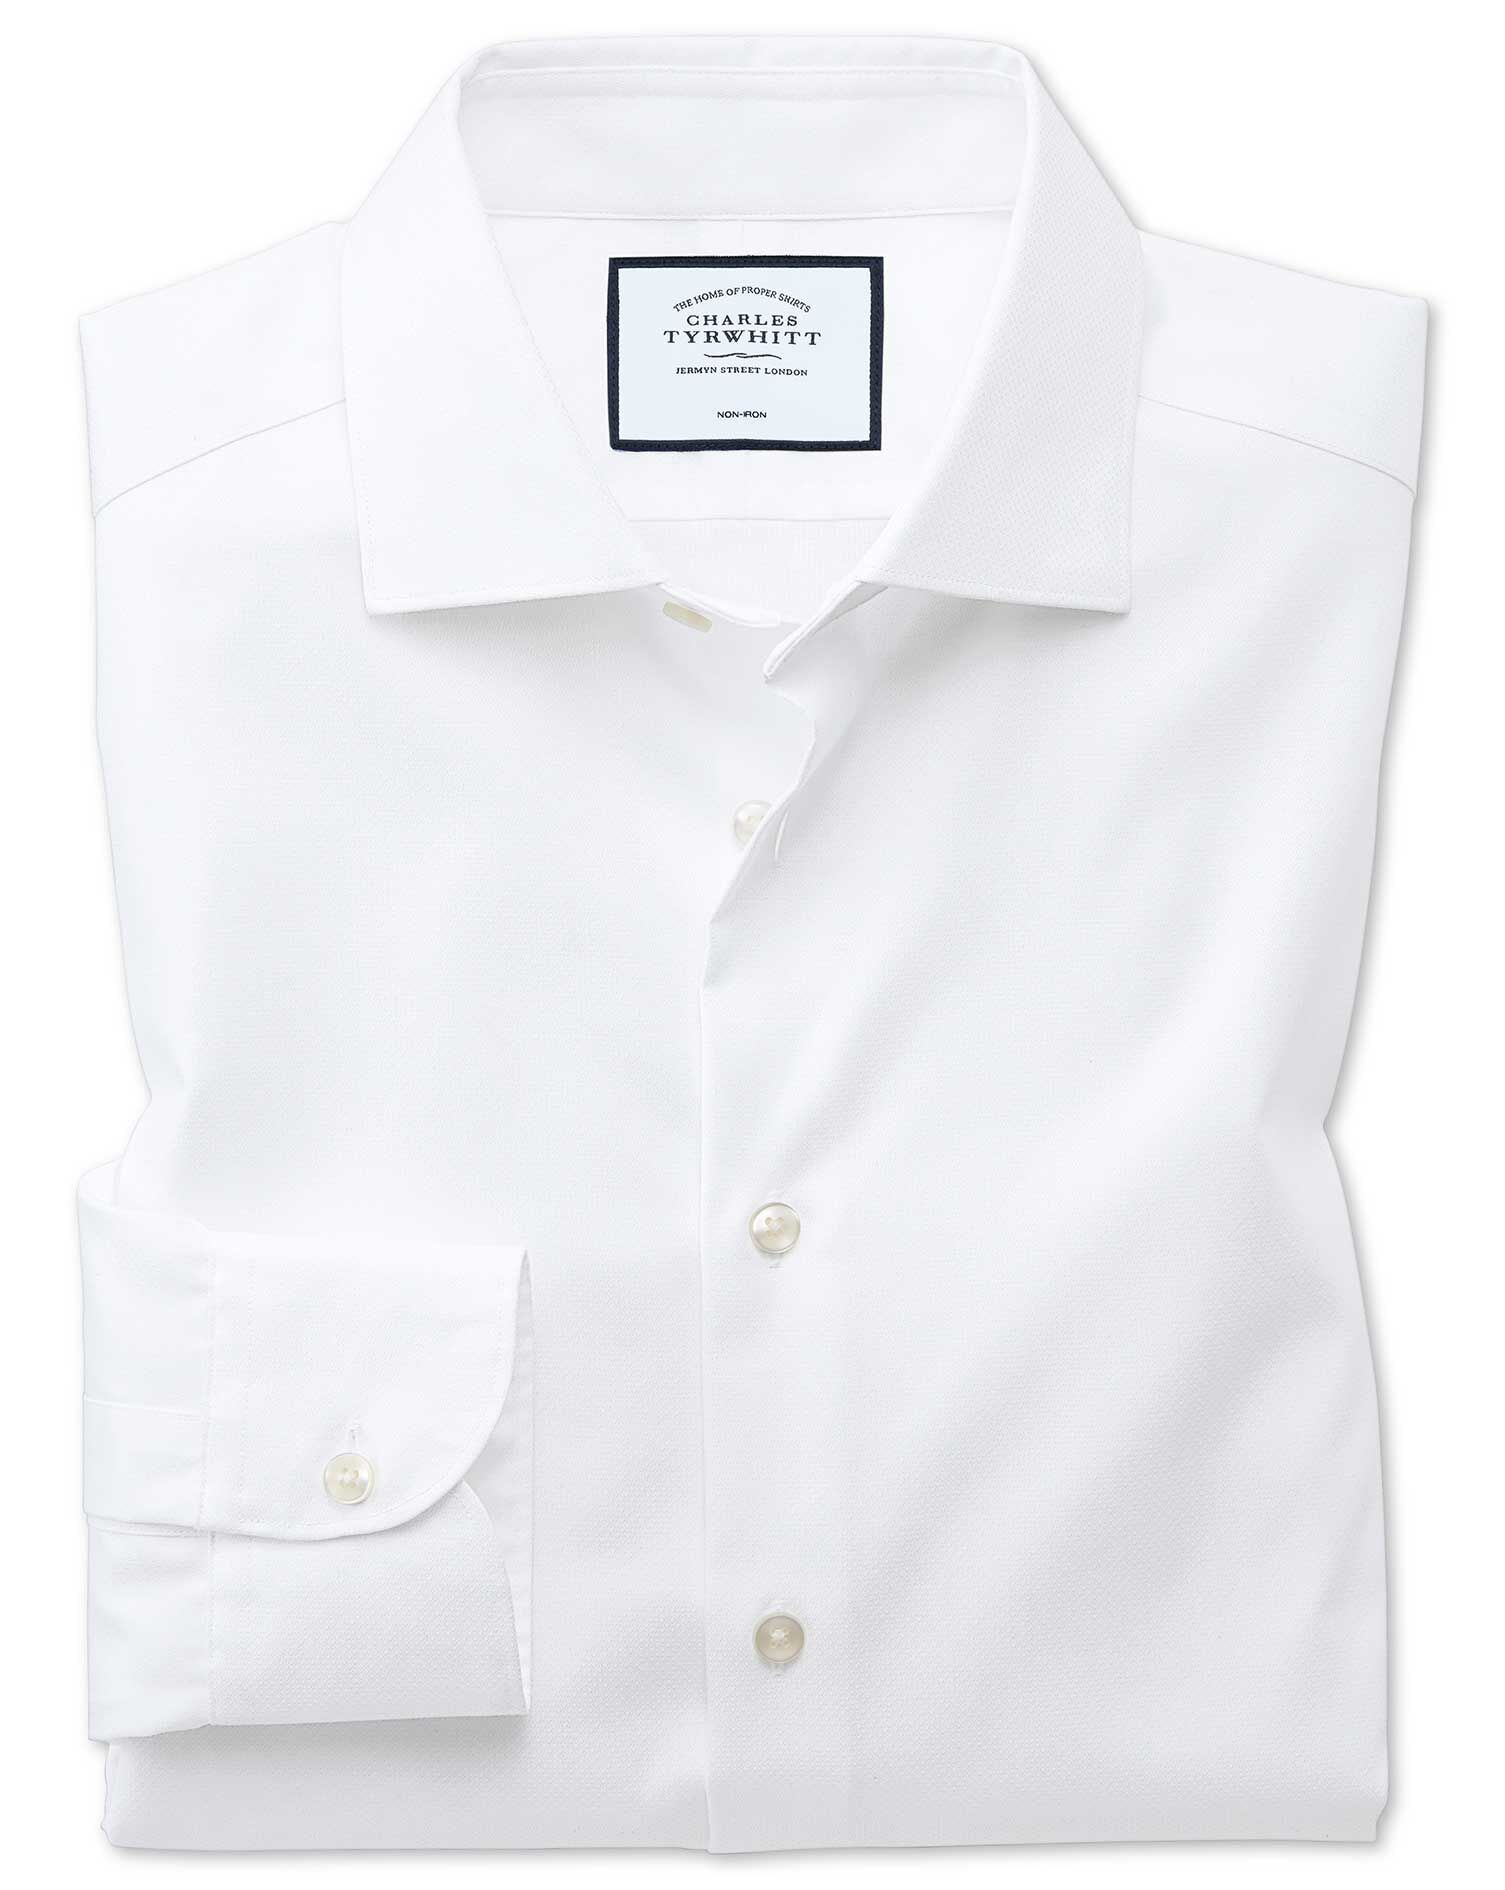 Extra Slim Fit Semi-Cutaway Business Casual Non-Iron Modern Textures White Cotton Formal Shirt Singl